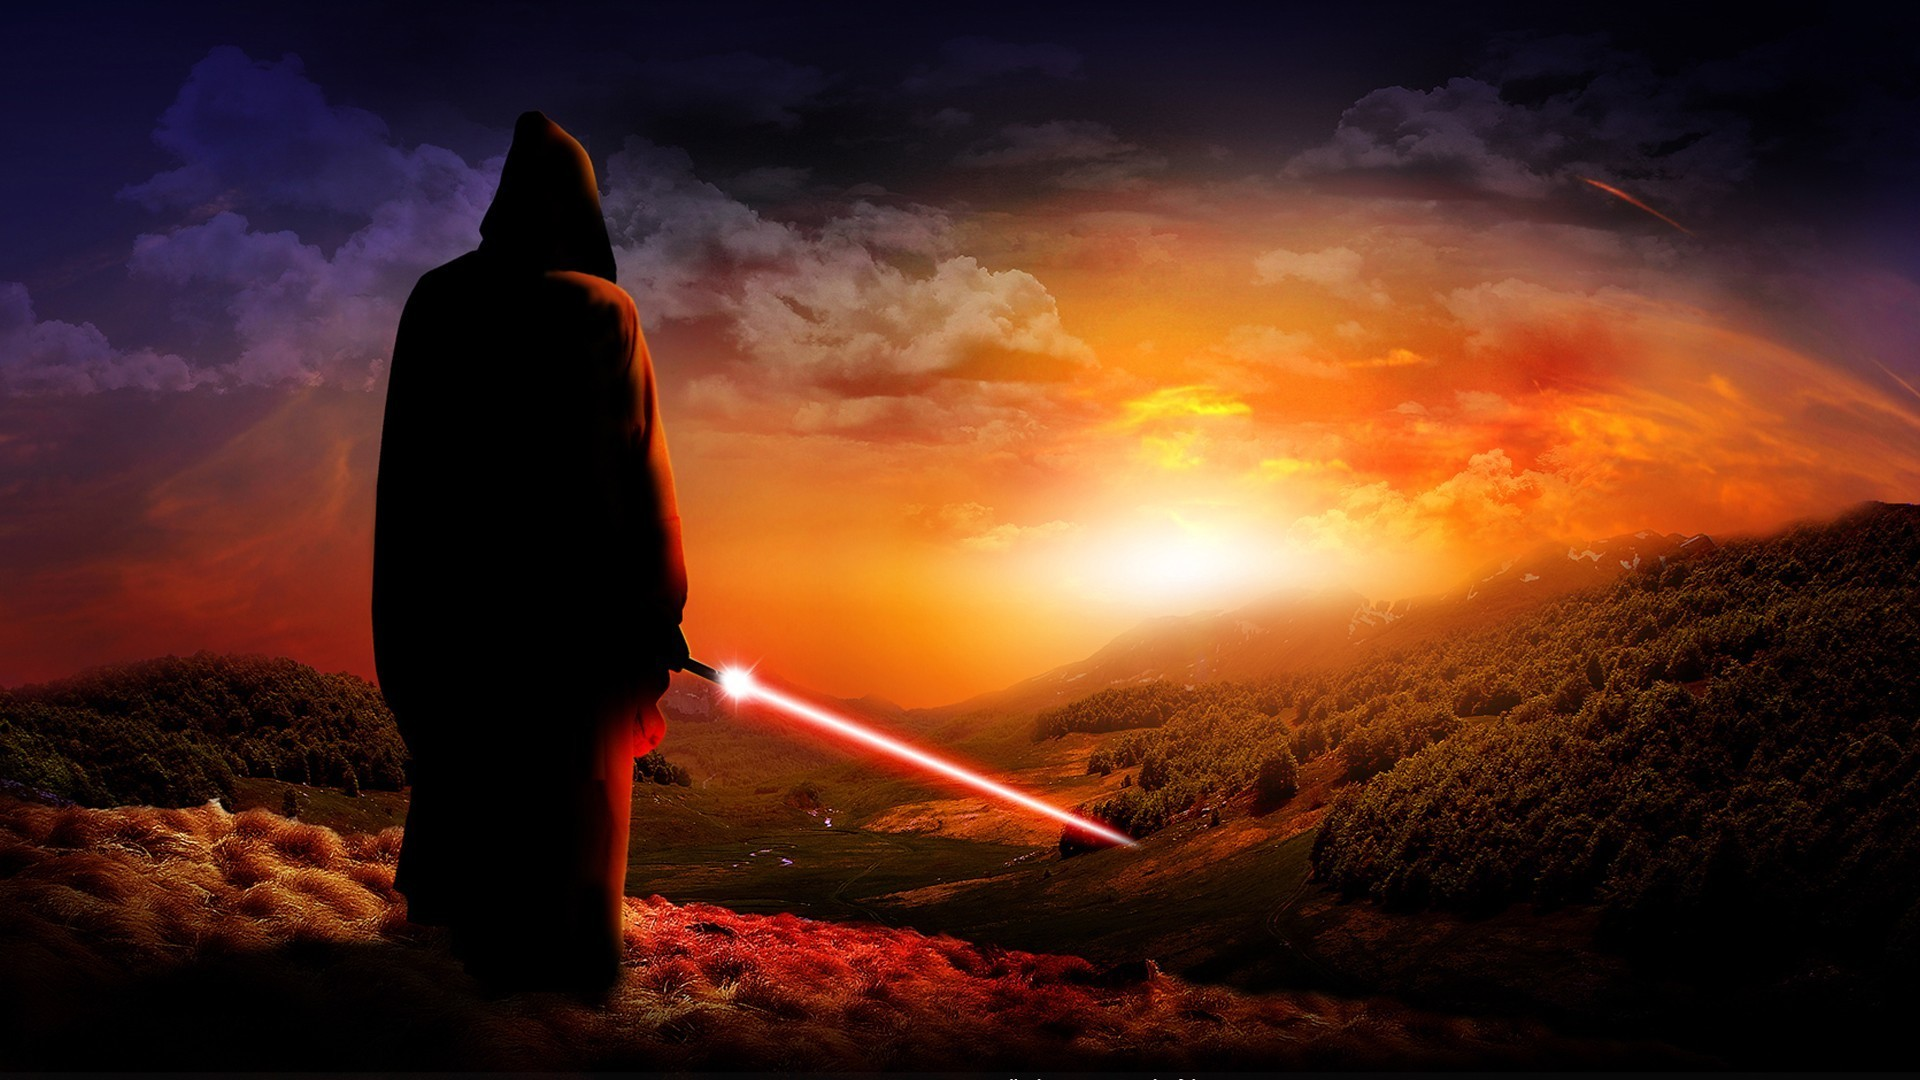 1920x1080 Jedi - Star Wars HD Sublime Wallpaper Free HD Wallpaper - Download .